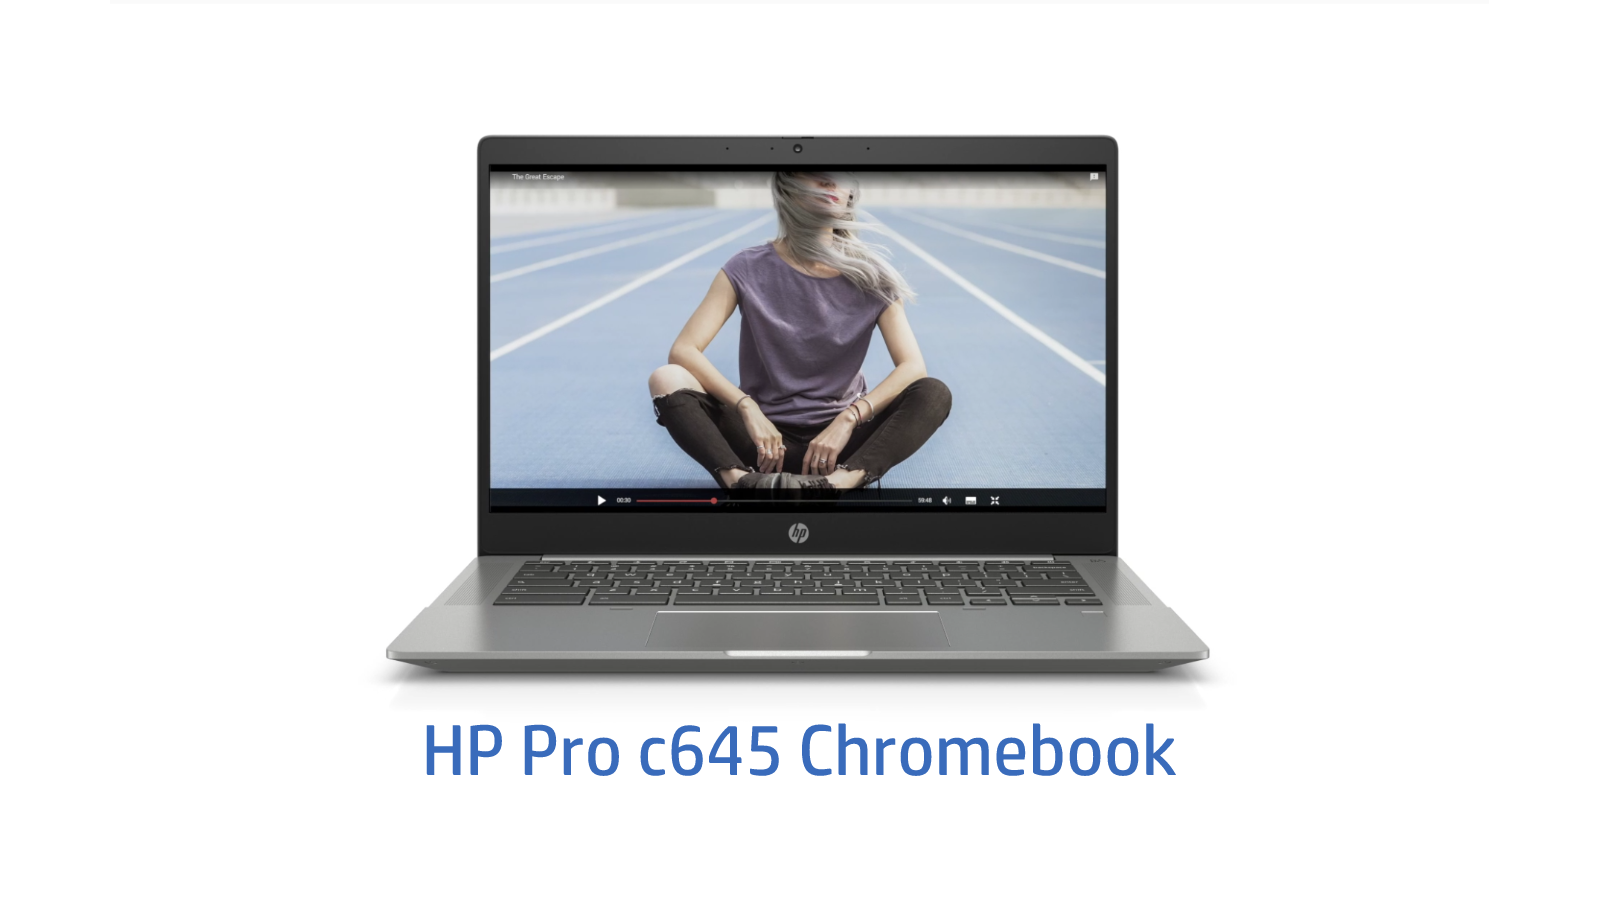 The Ryzen-powered HP Pro c645 Chromebook is now available and customizable